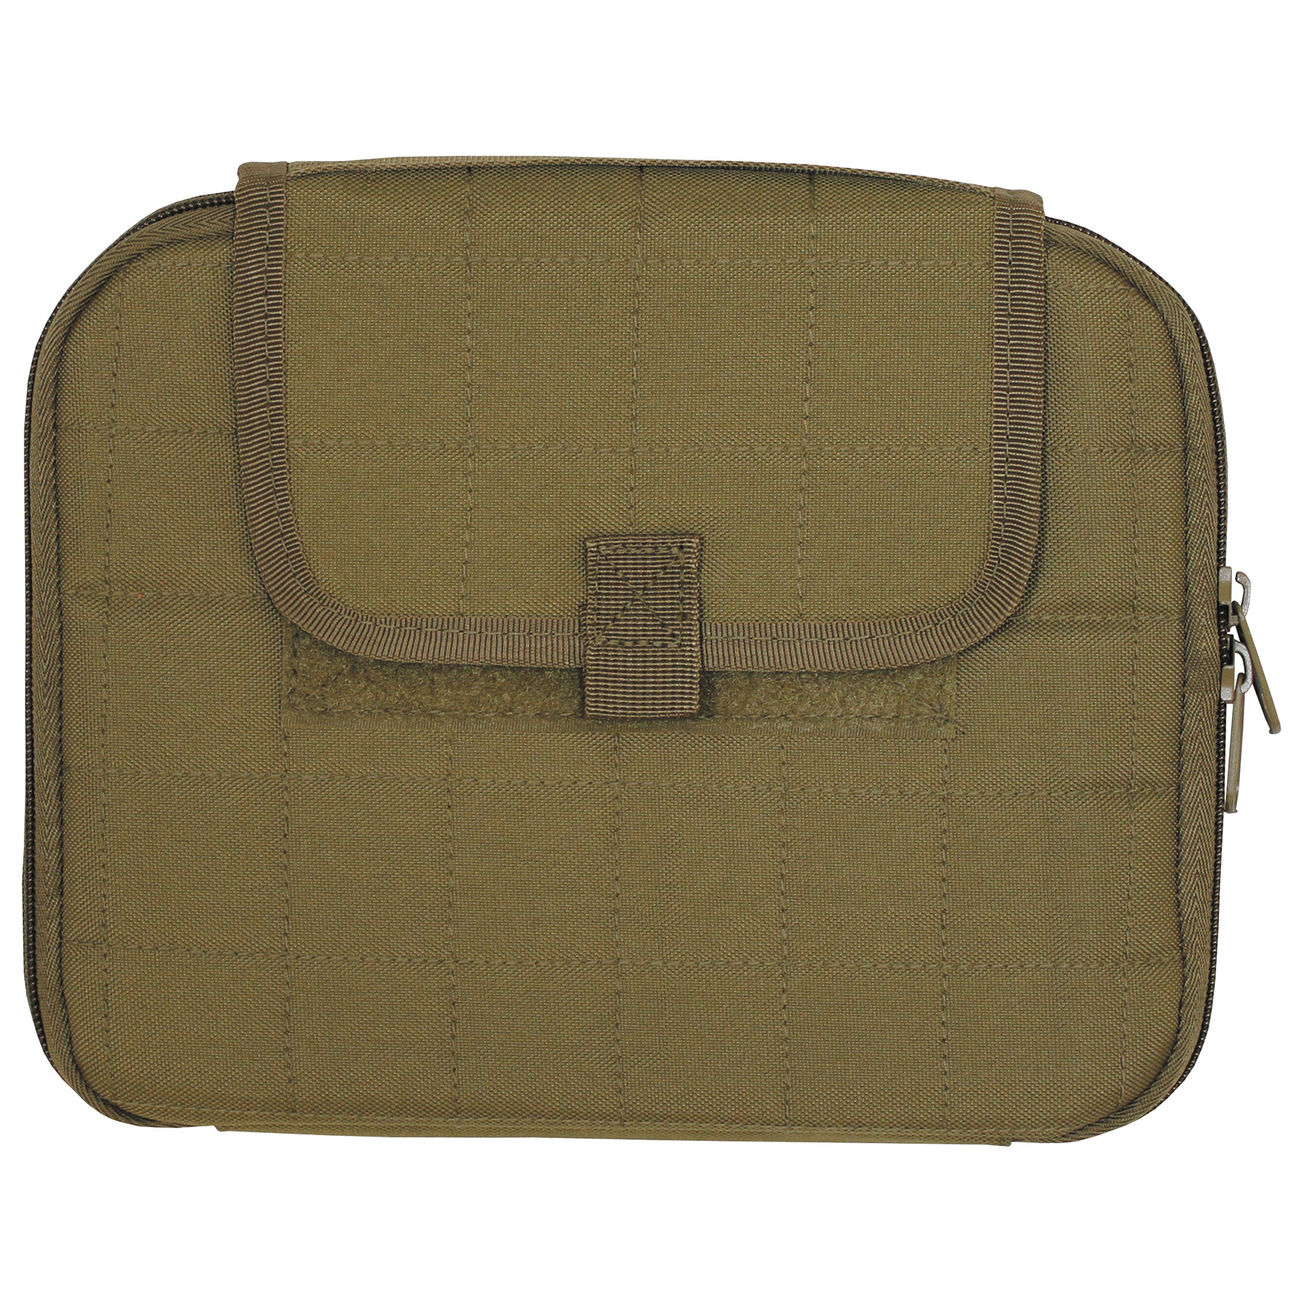 MFH Tablet-Tasche Molle coyote tan 0